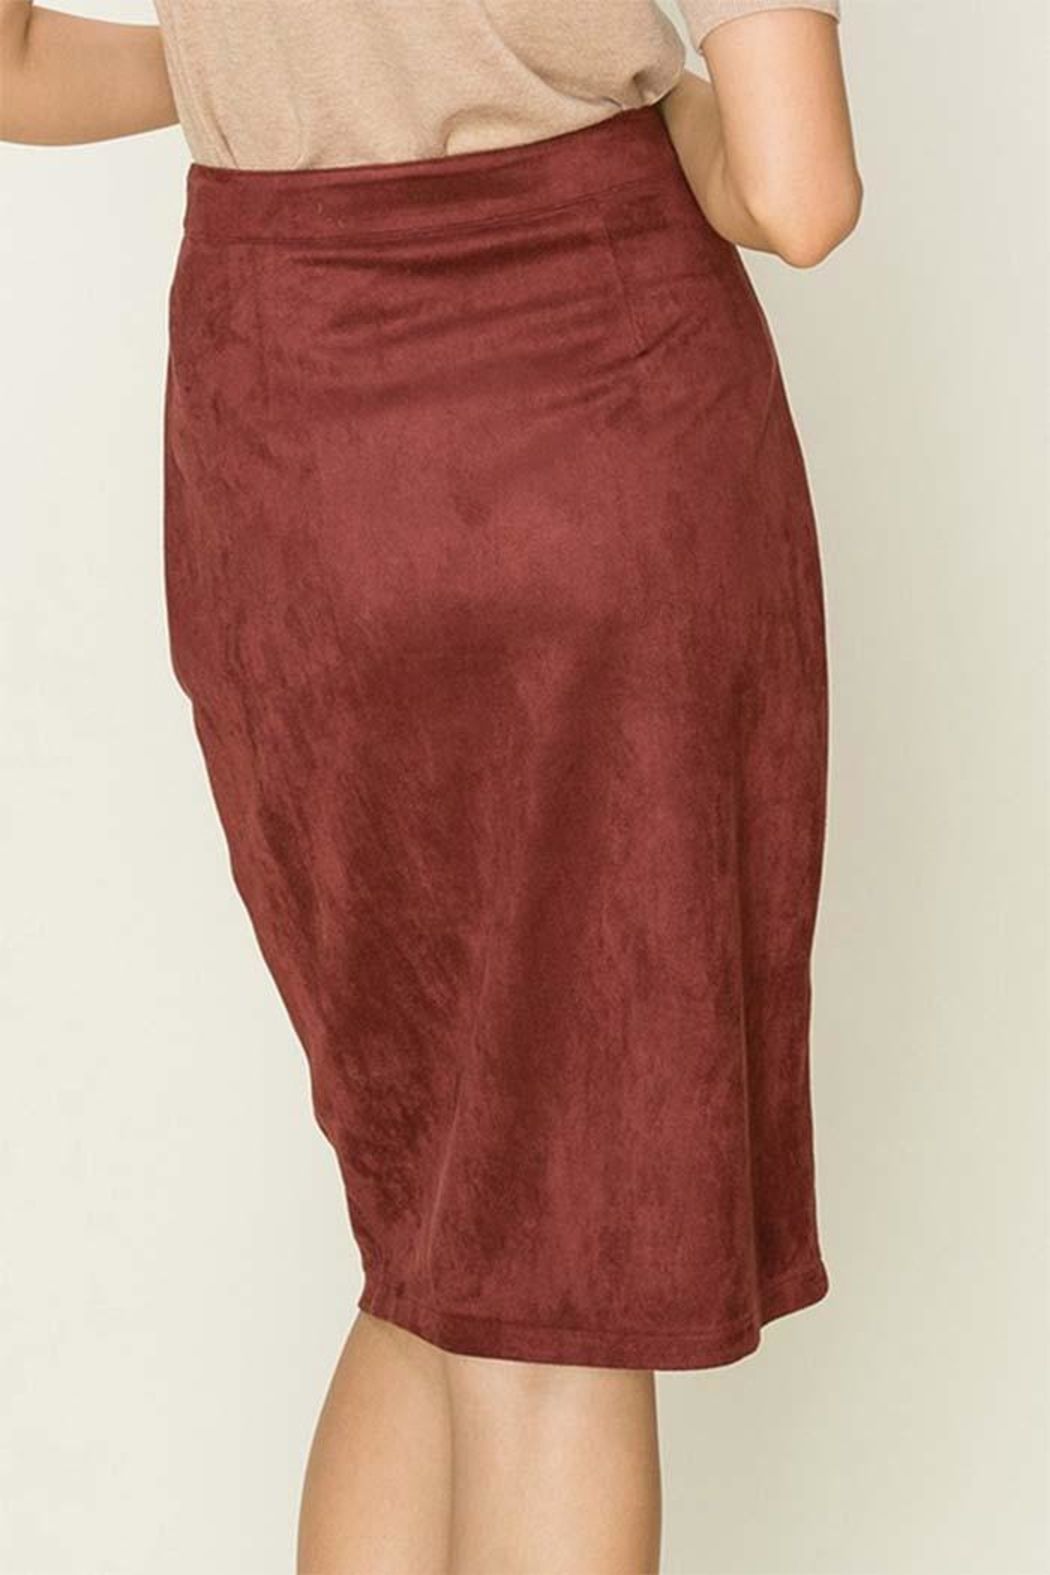 HYFVE Fuax Suede Skirt - Side Cropped Image